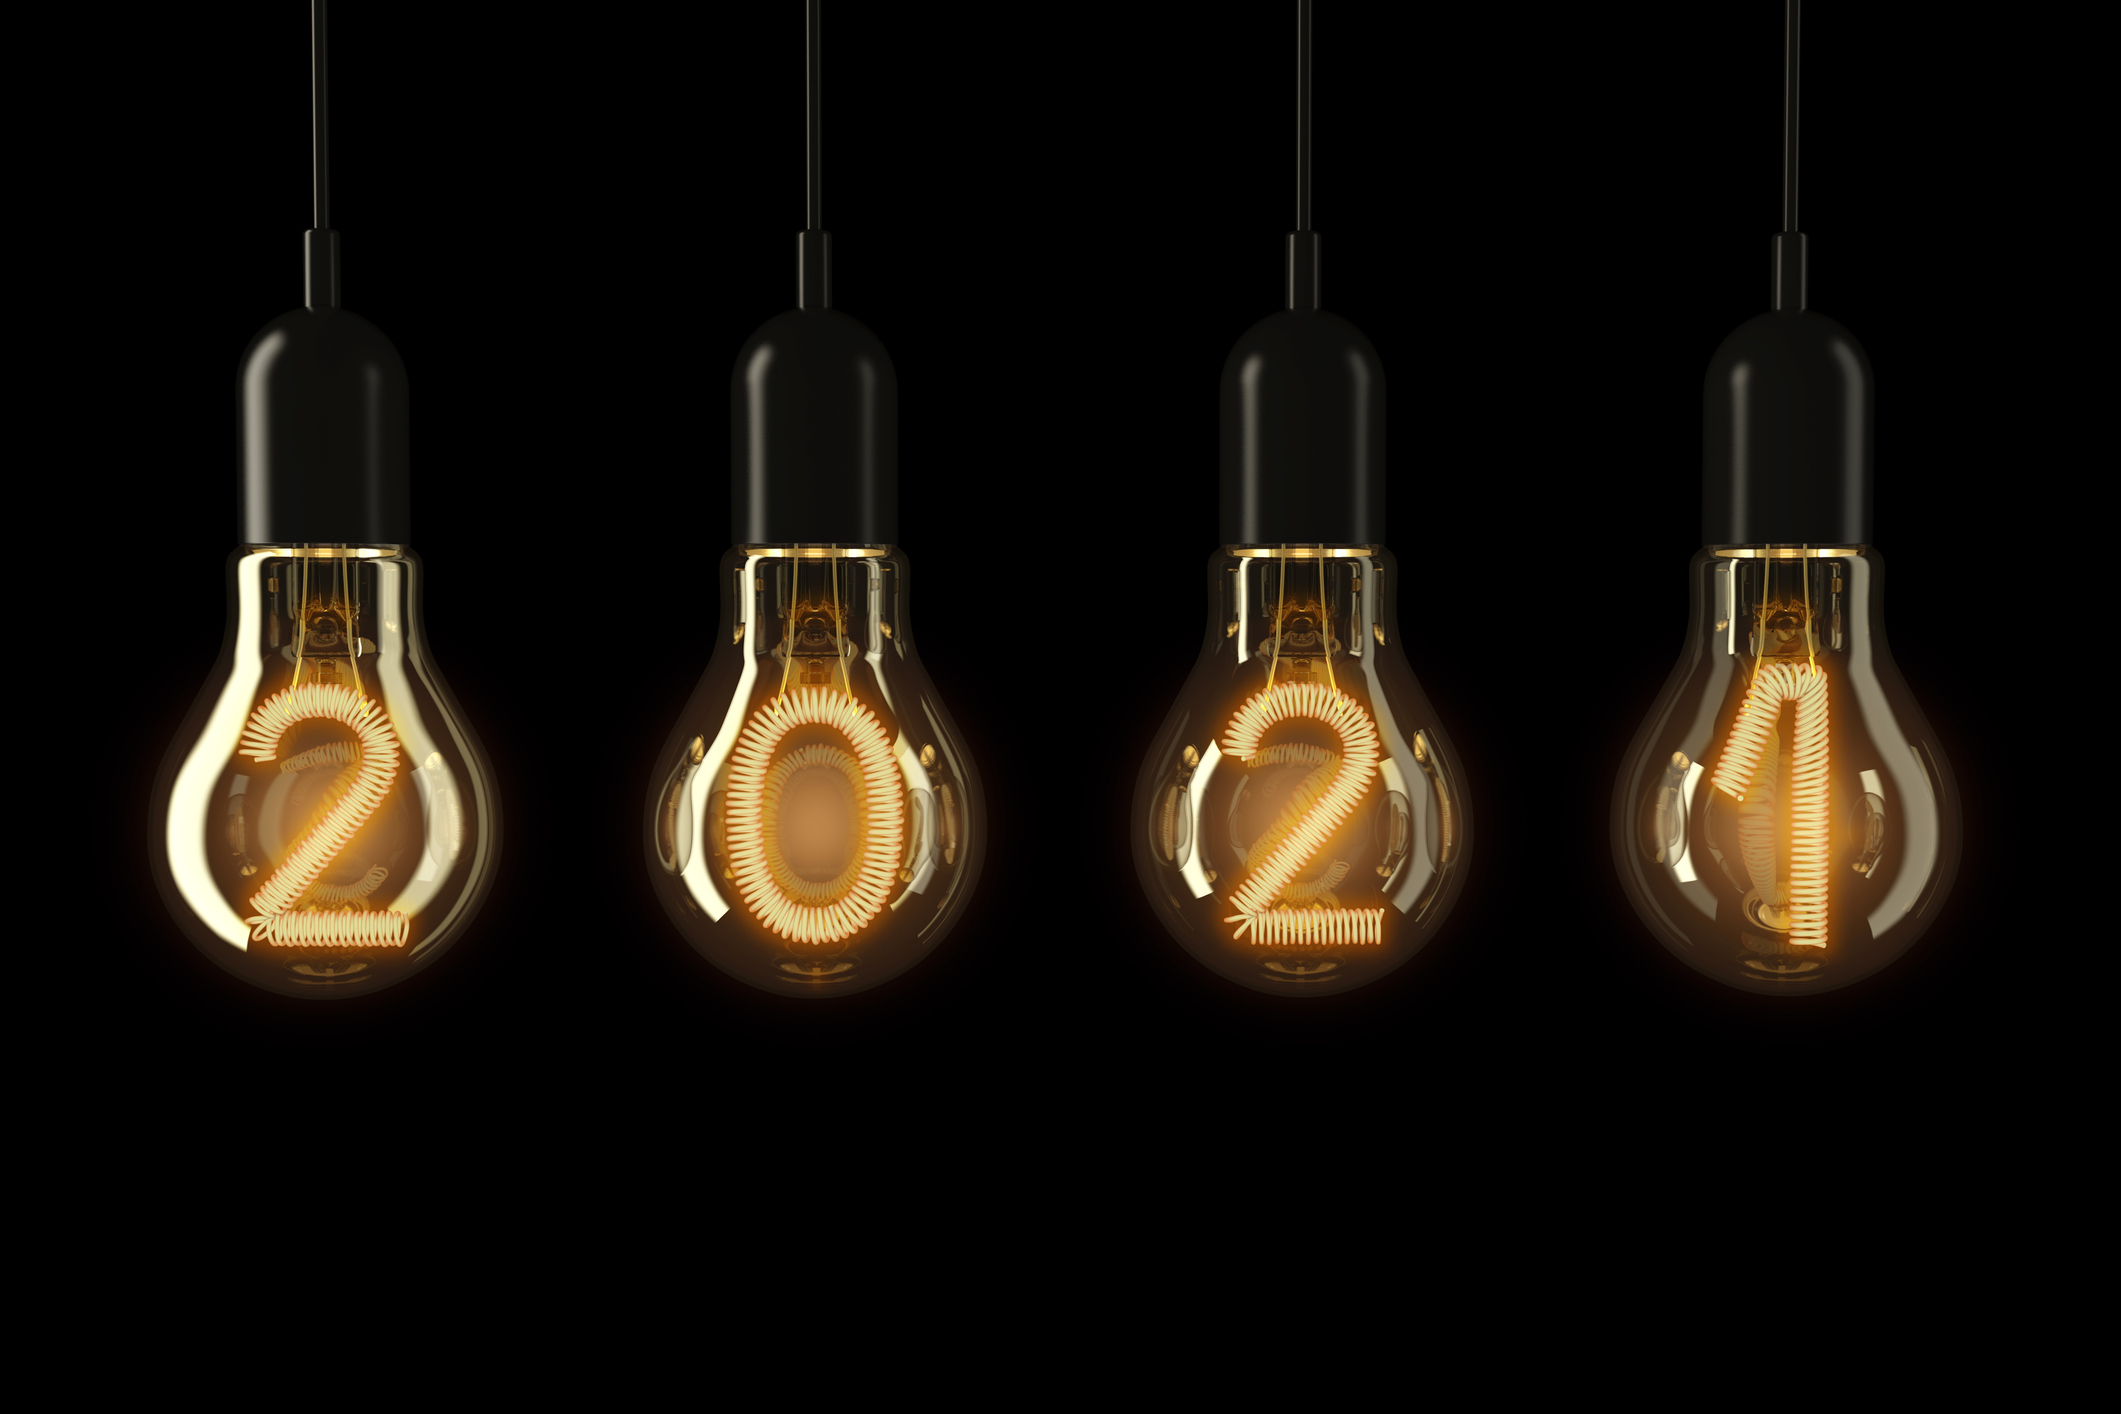 2021 in lightbulbs over black background